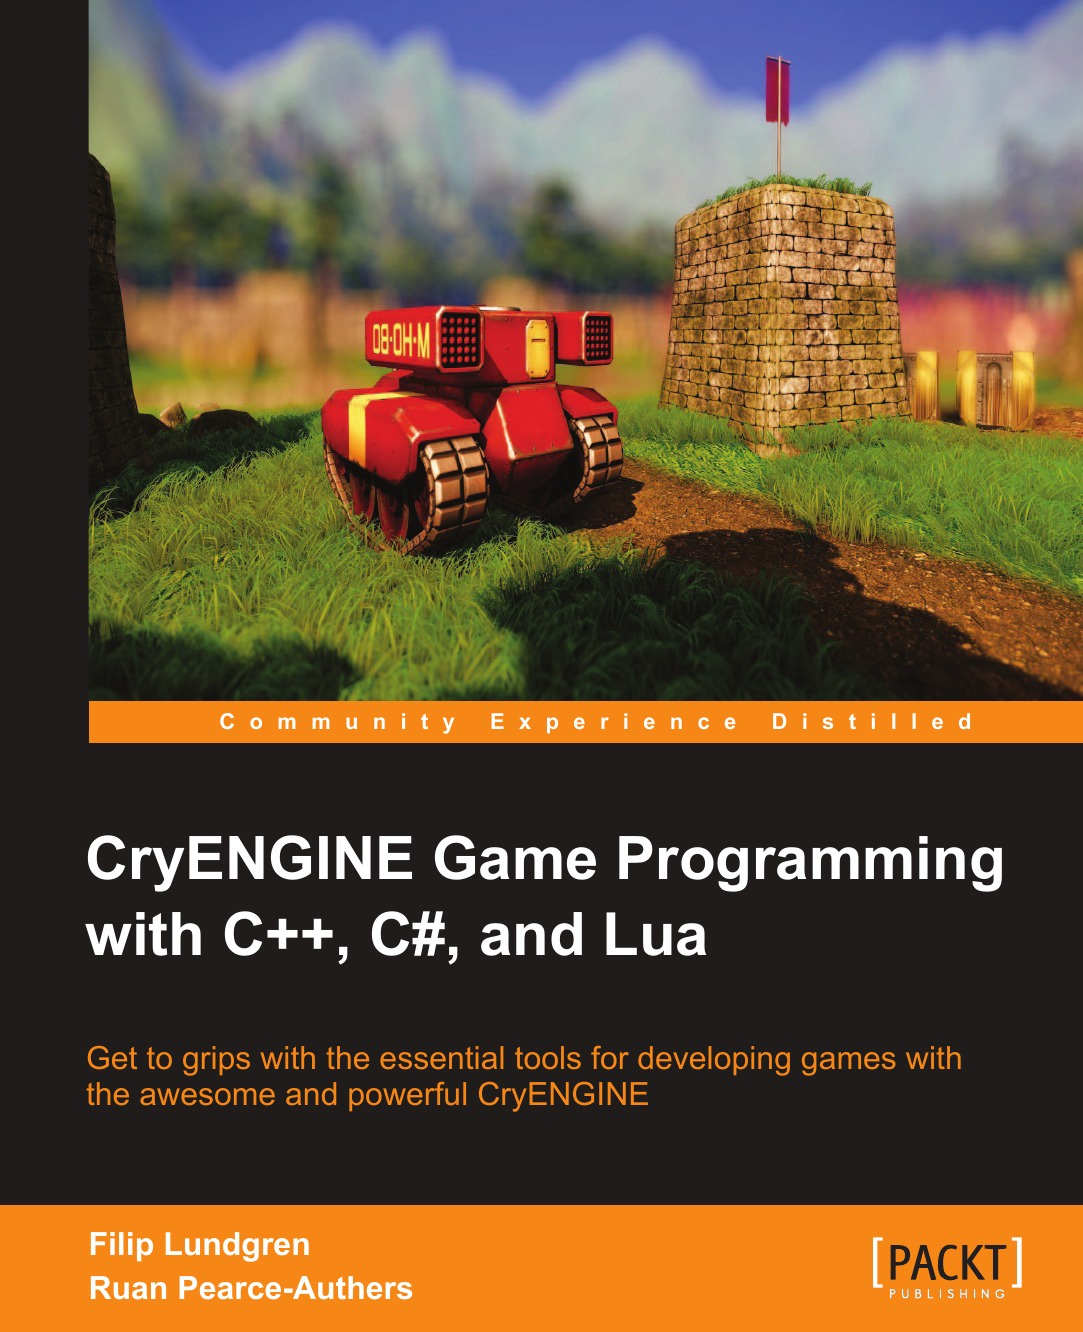 Carl-Filip Lundgren Cryengine Game Programming with C++, C#, and Lua